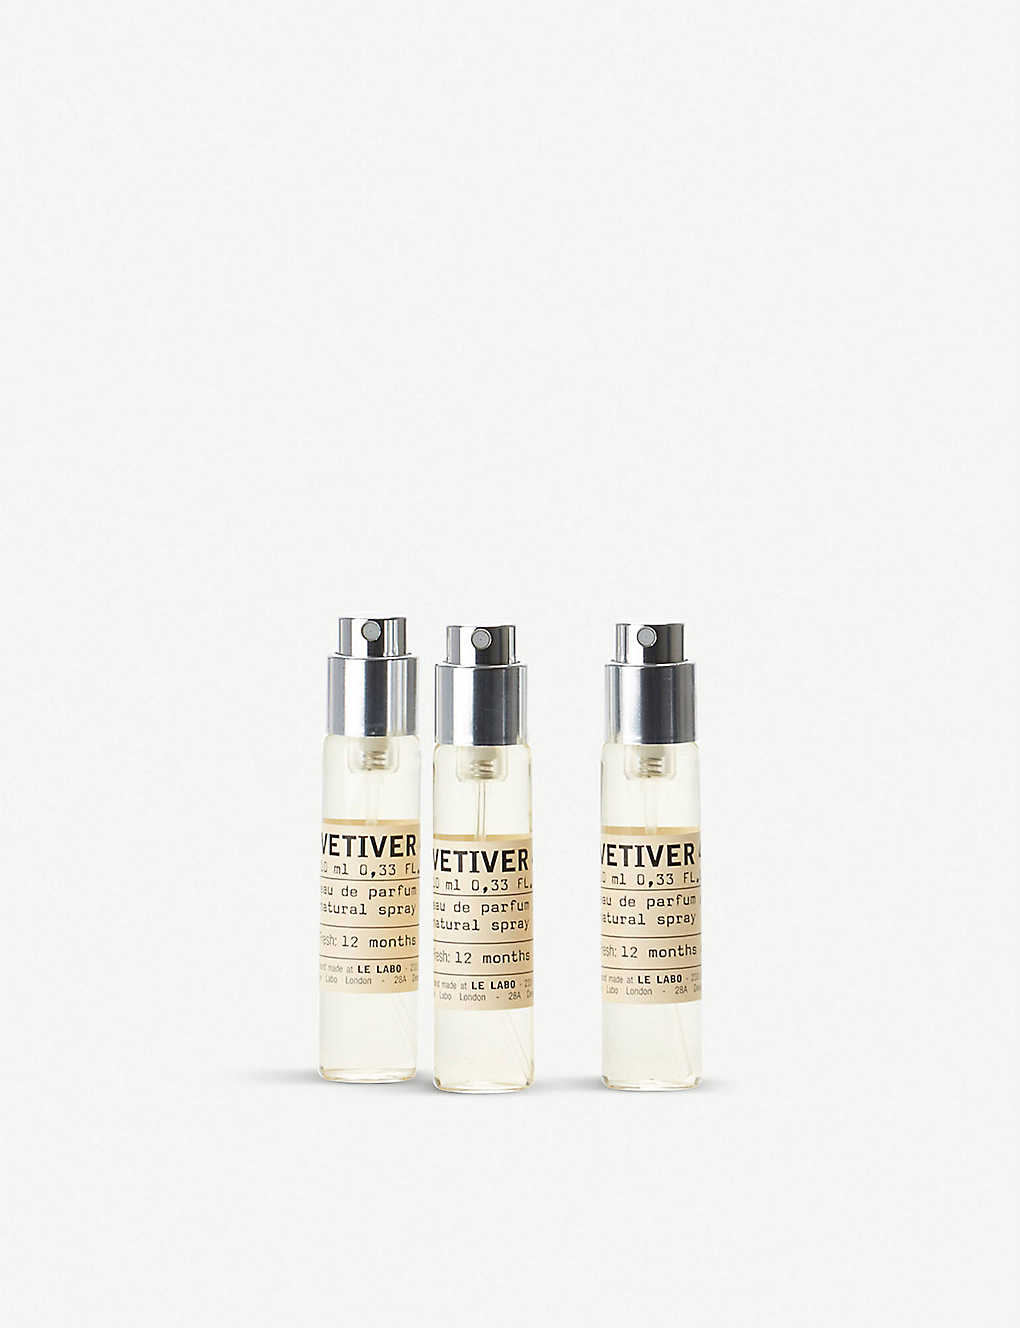 LE LABO: Vetiver 46 Eau de Parfum Travel Tube Refills 3x10ml